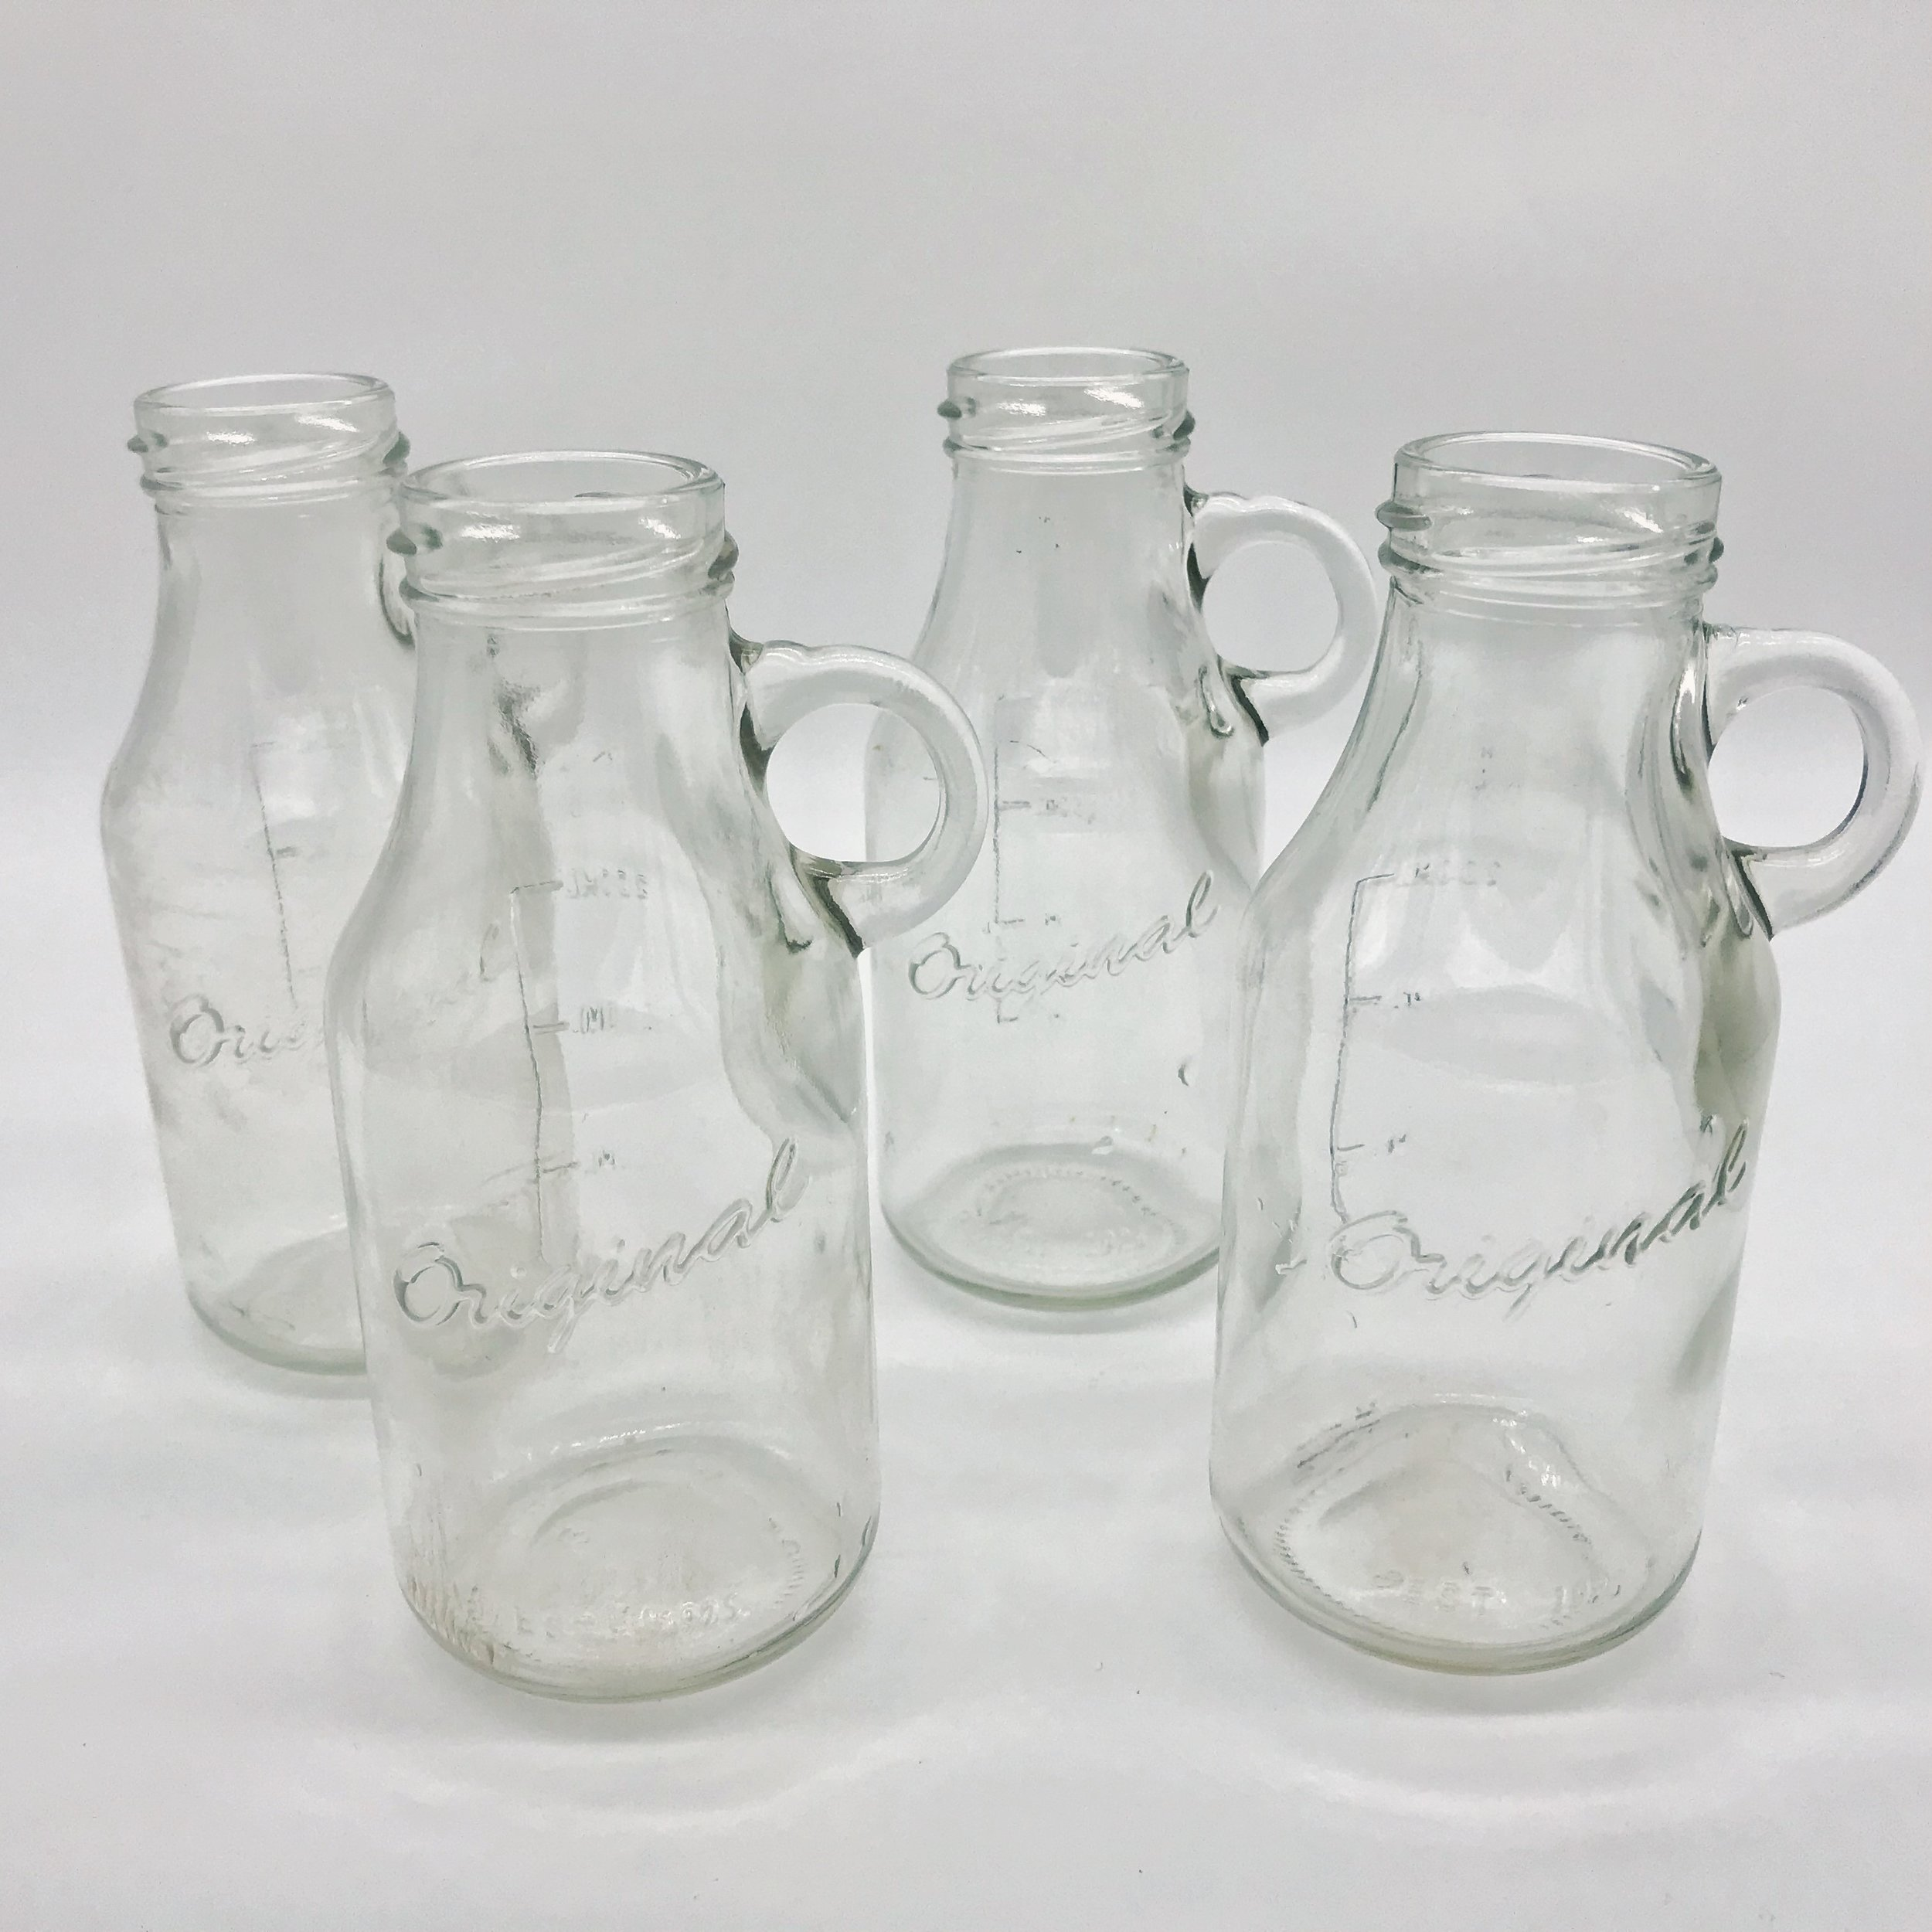 Vintage milk bottles  Price: $0.50  Qty: 9